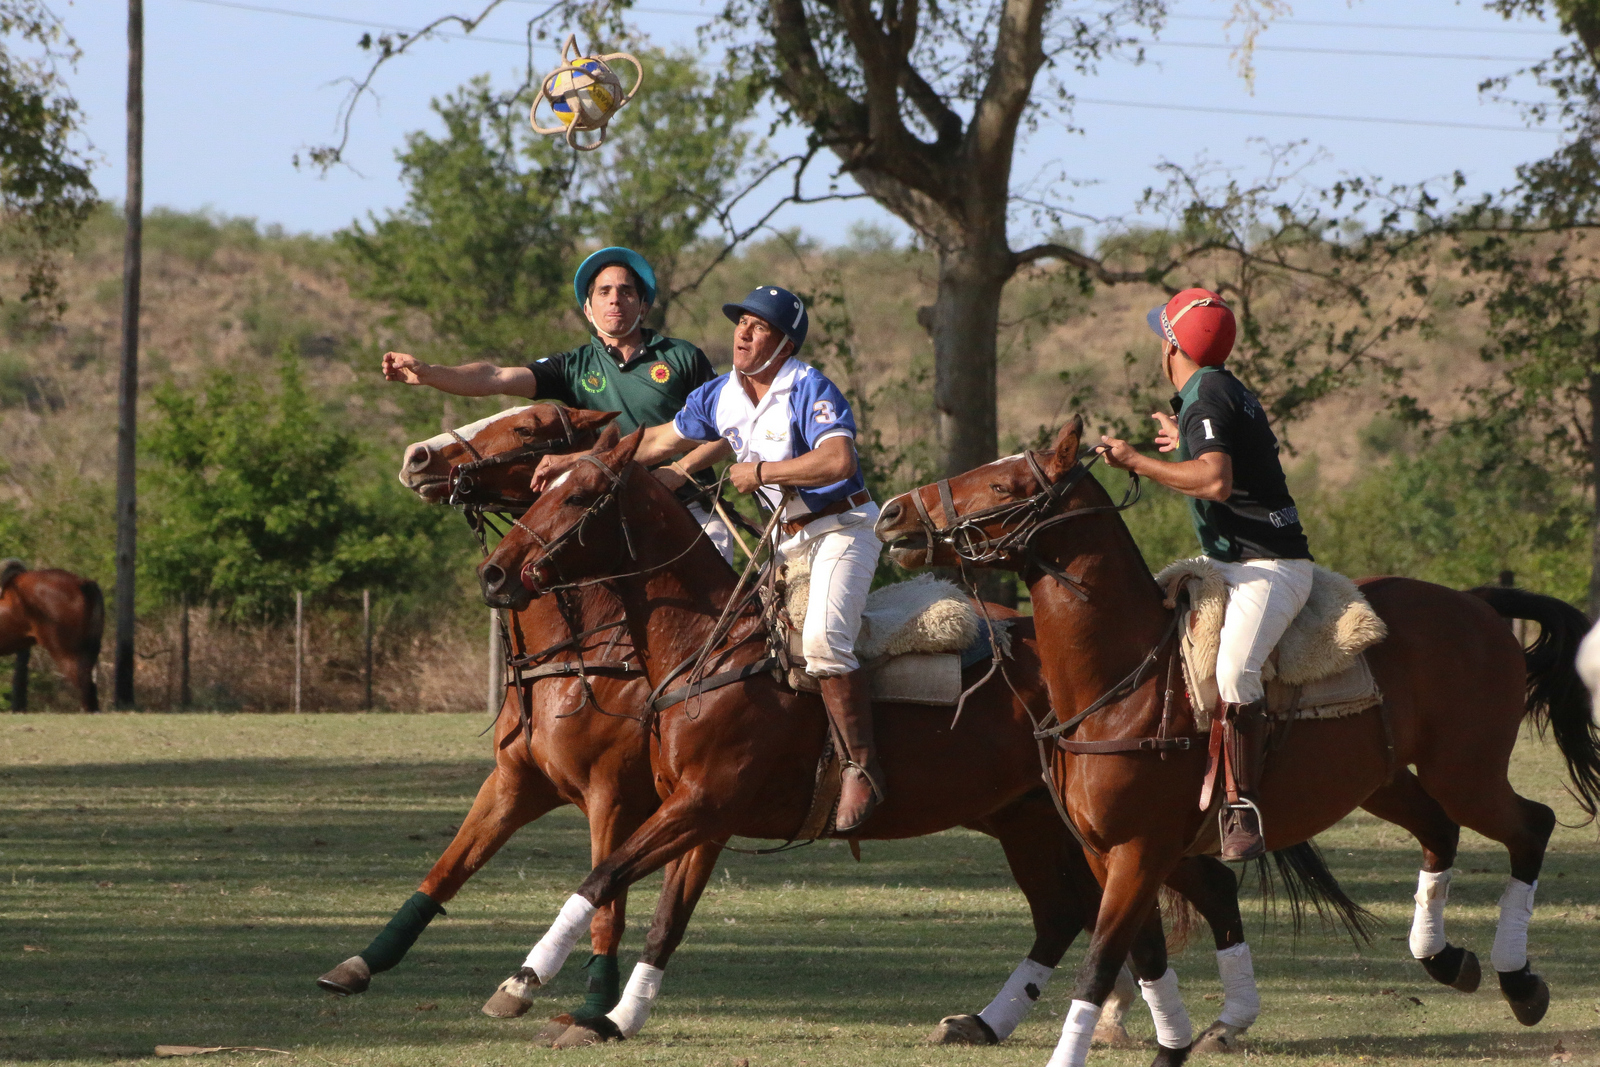 Two four-member teams fight for possession of a ball which has 6 leather handles.